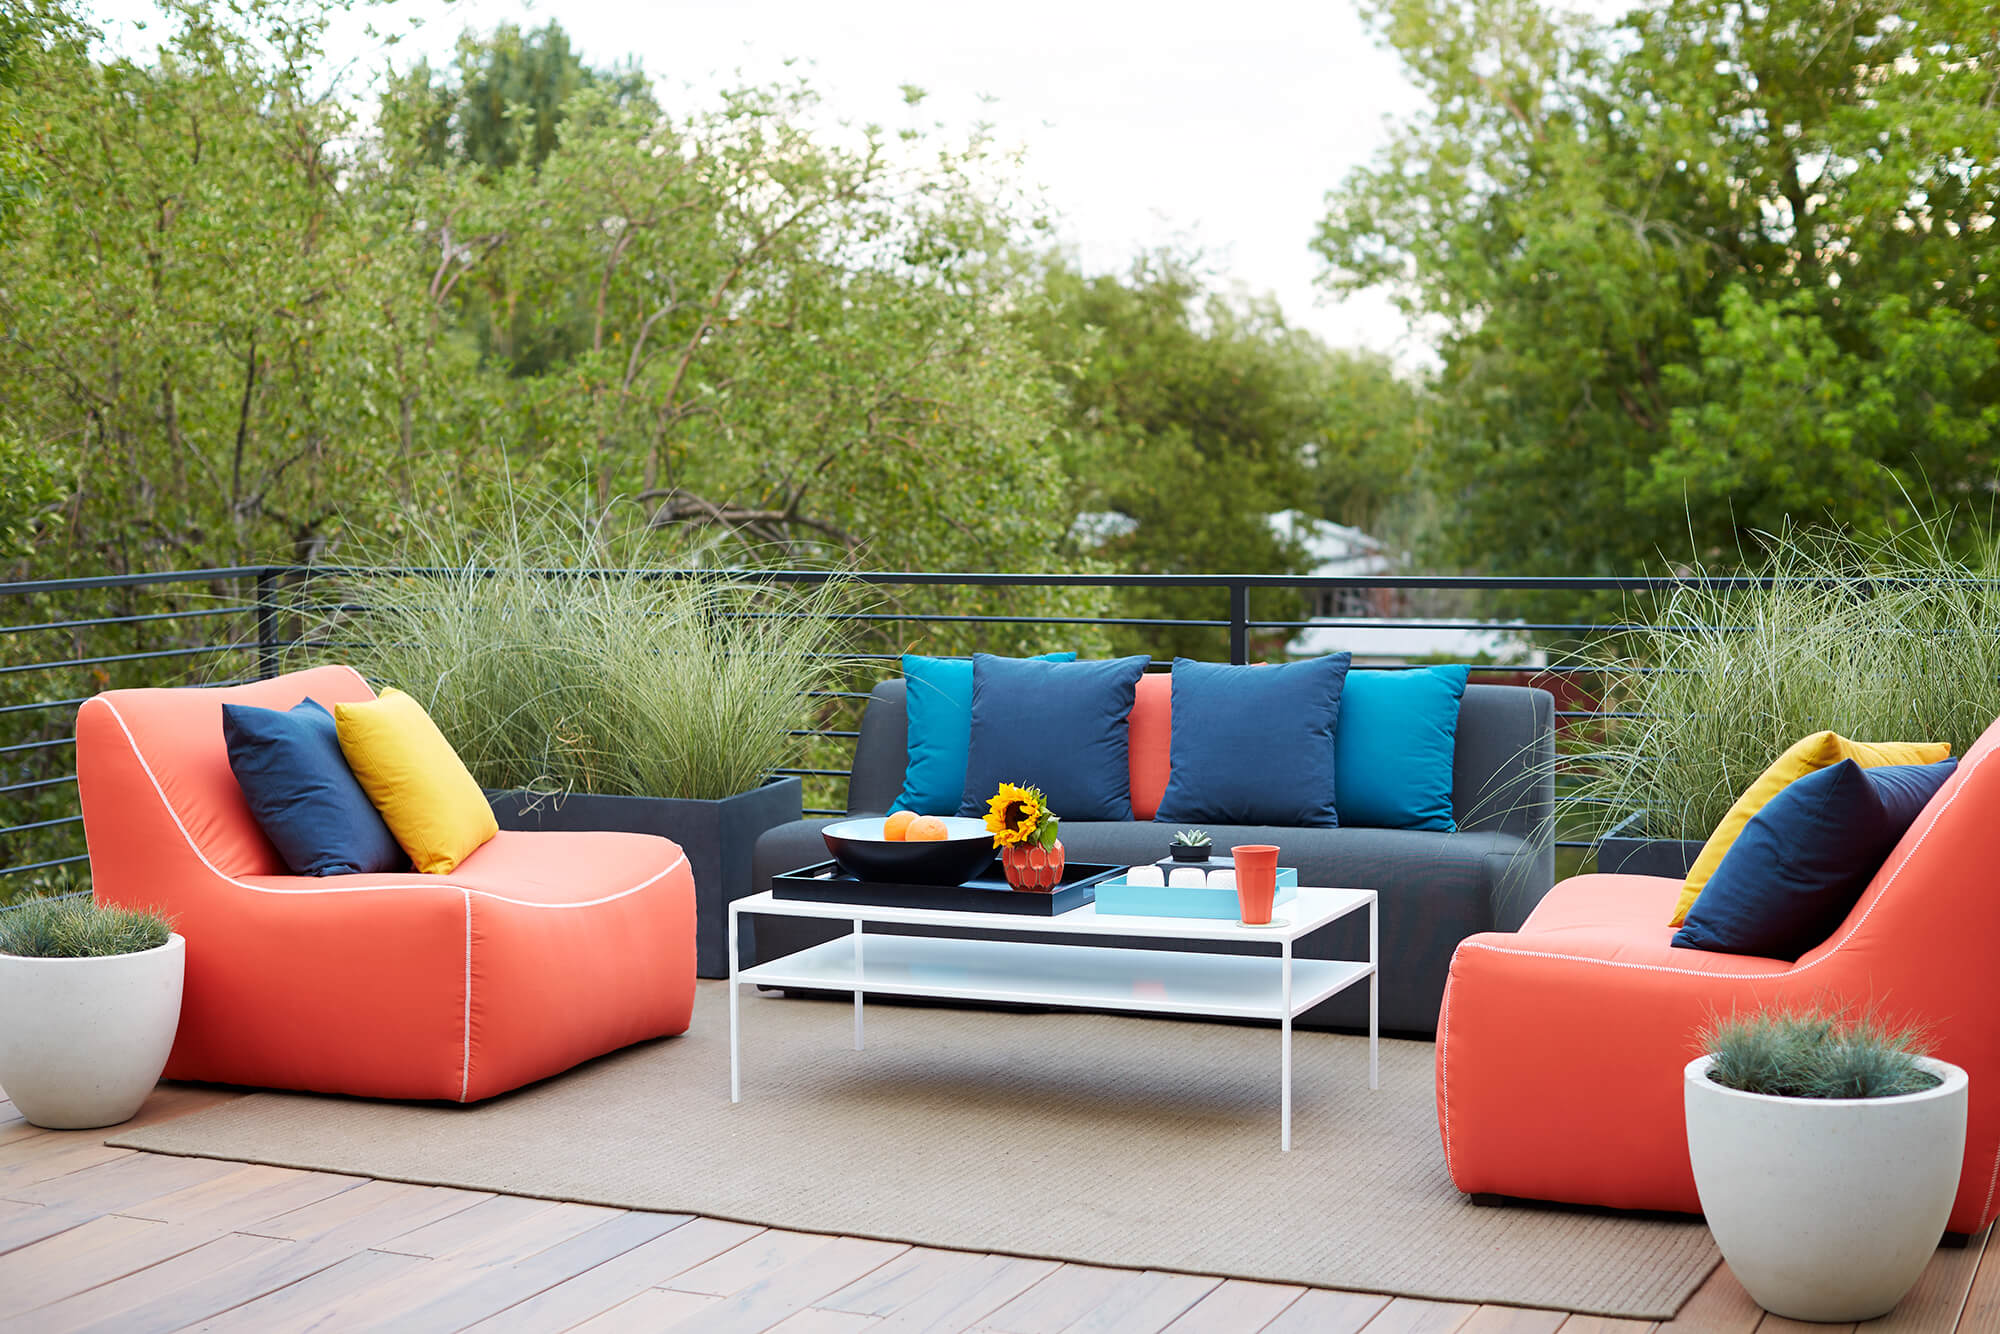 Oversized outdoor furniture is upholstered in red, blue and yellow fabrics